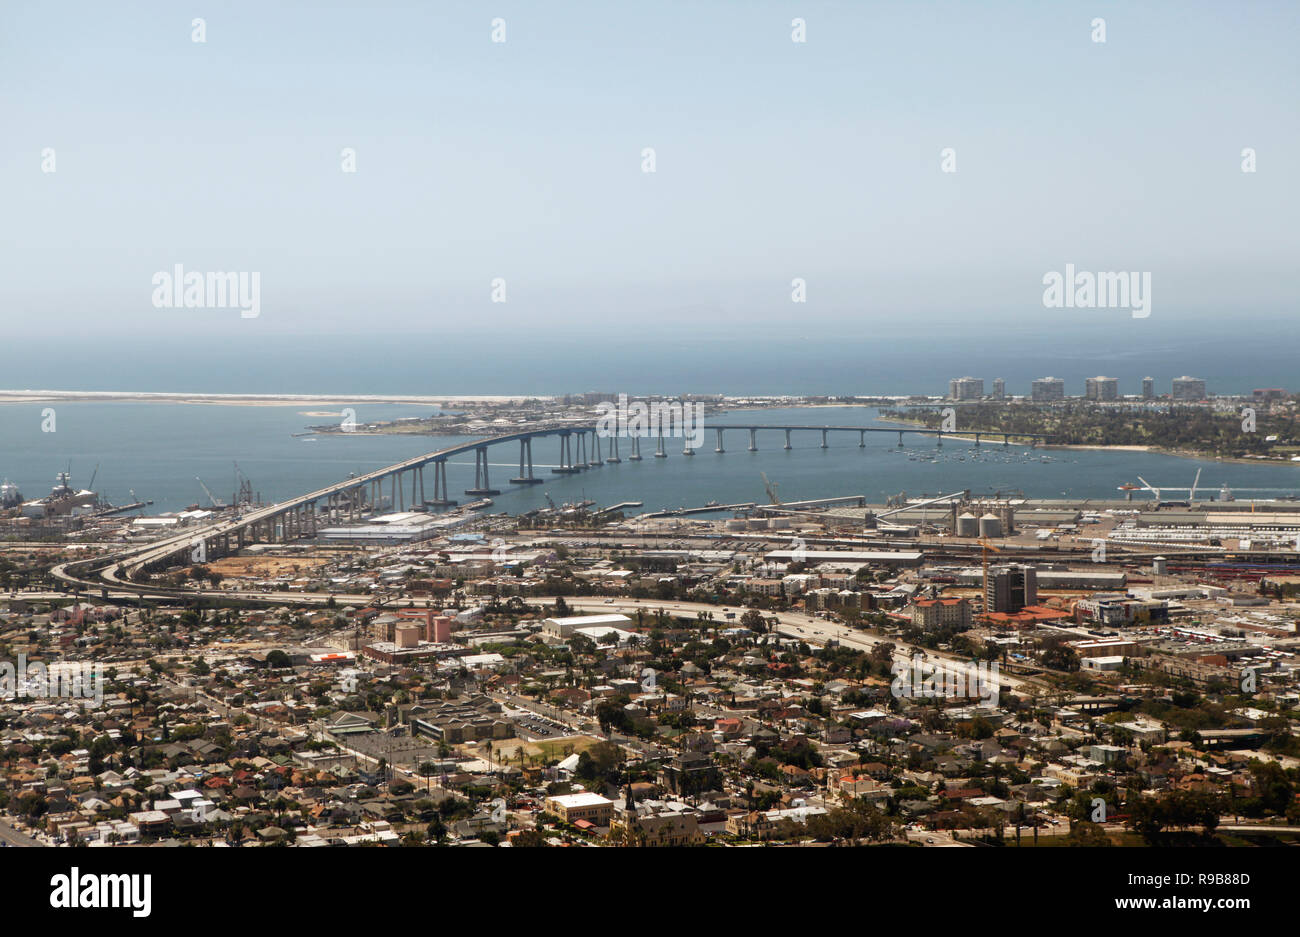 USA, California, San Diego, a view of Downtown San Diego with the bridge to Coronado Island in the distance - Stock Image